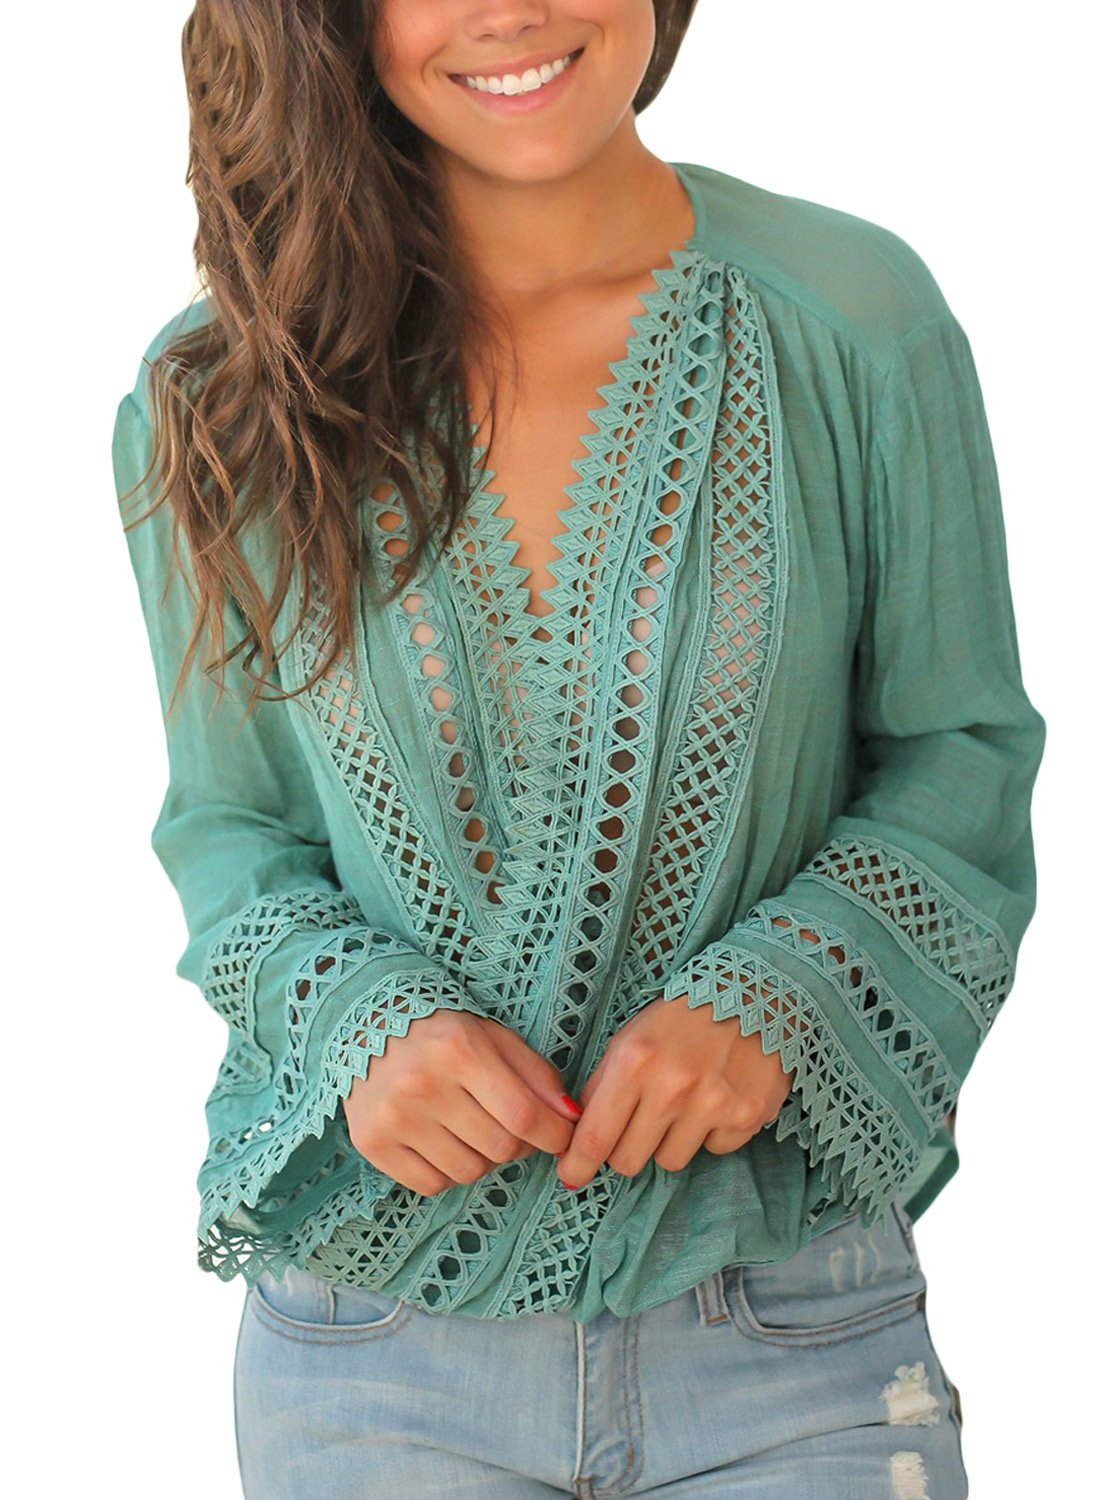 FARYSAYS Women's Casual Crochet V Neck Hollow Out Long Bell Sleeve T Shirt Tops Blouse Green XX-Large